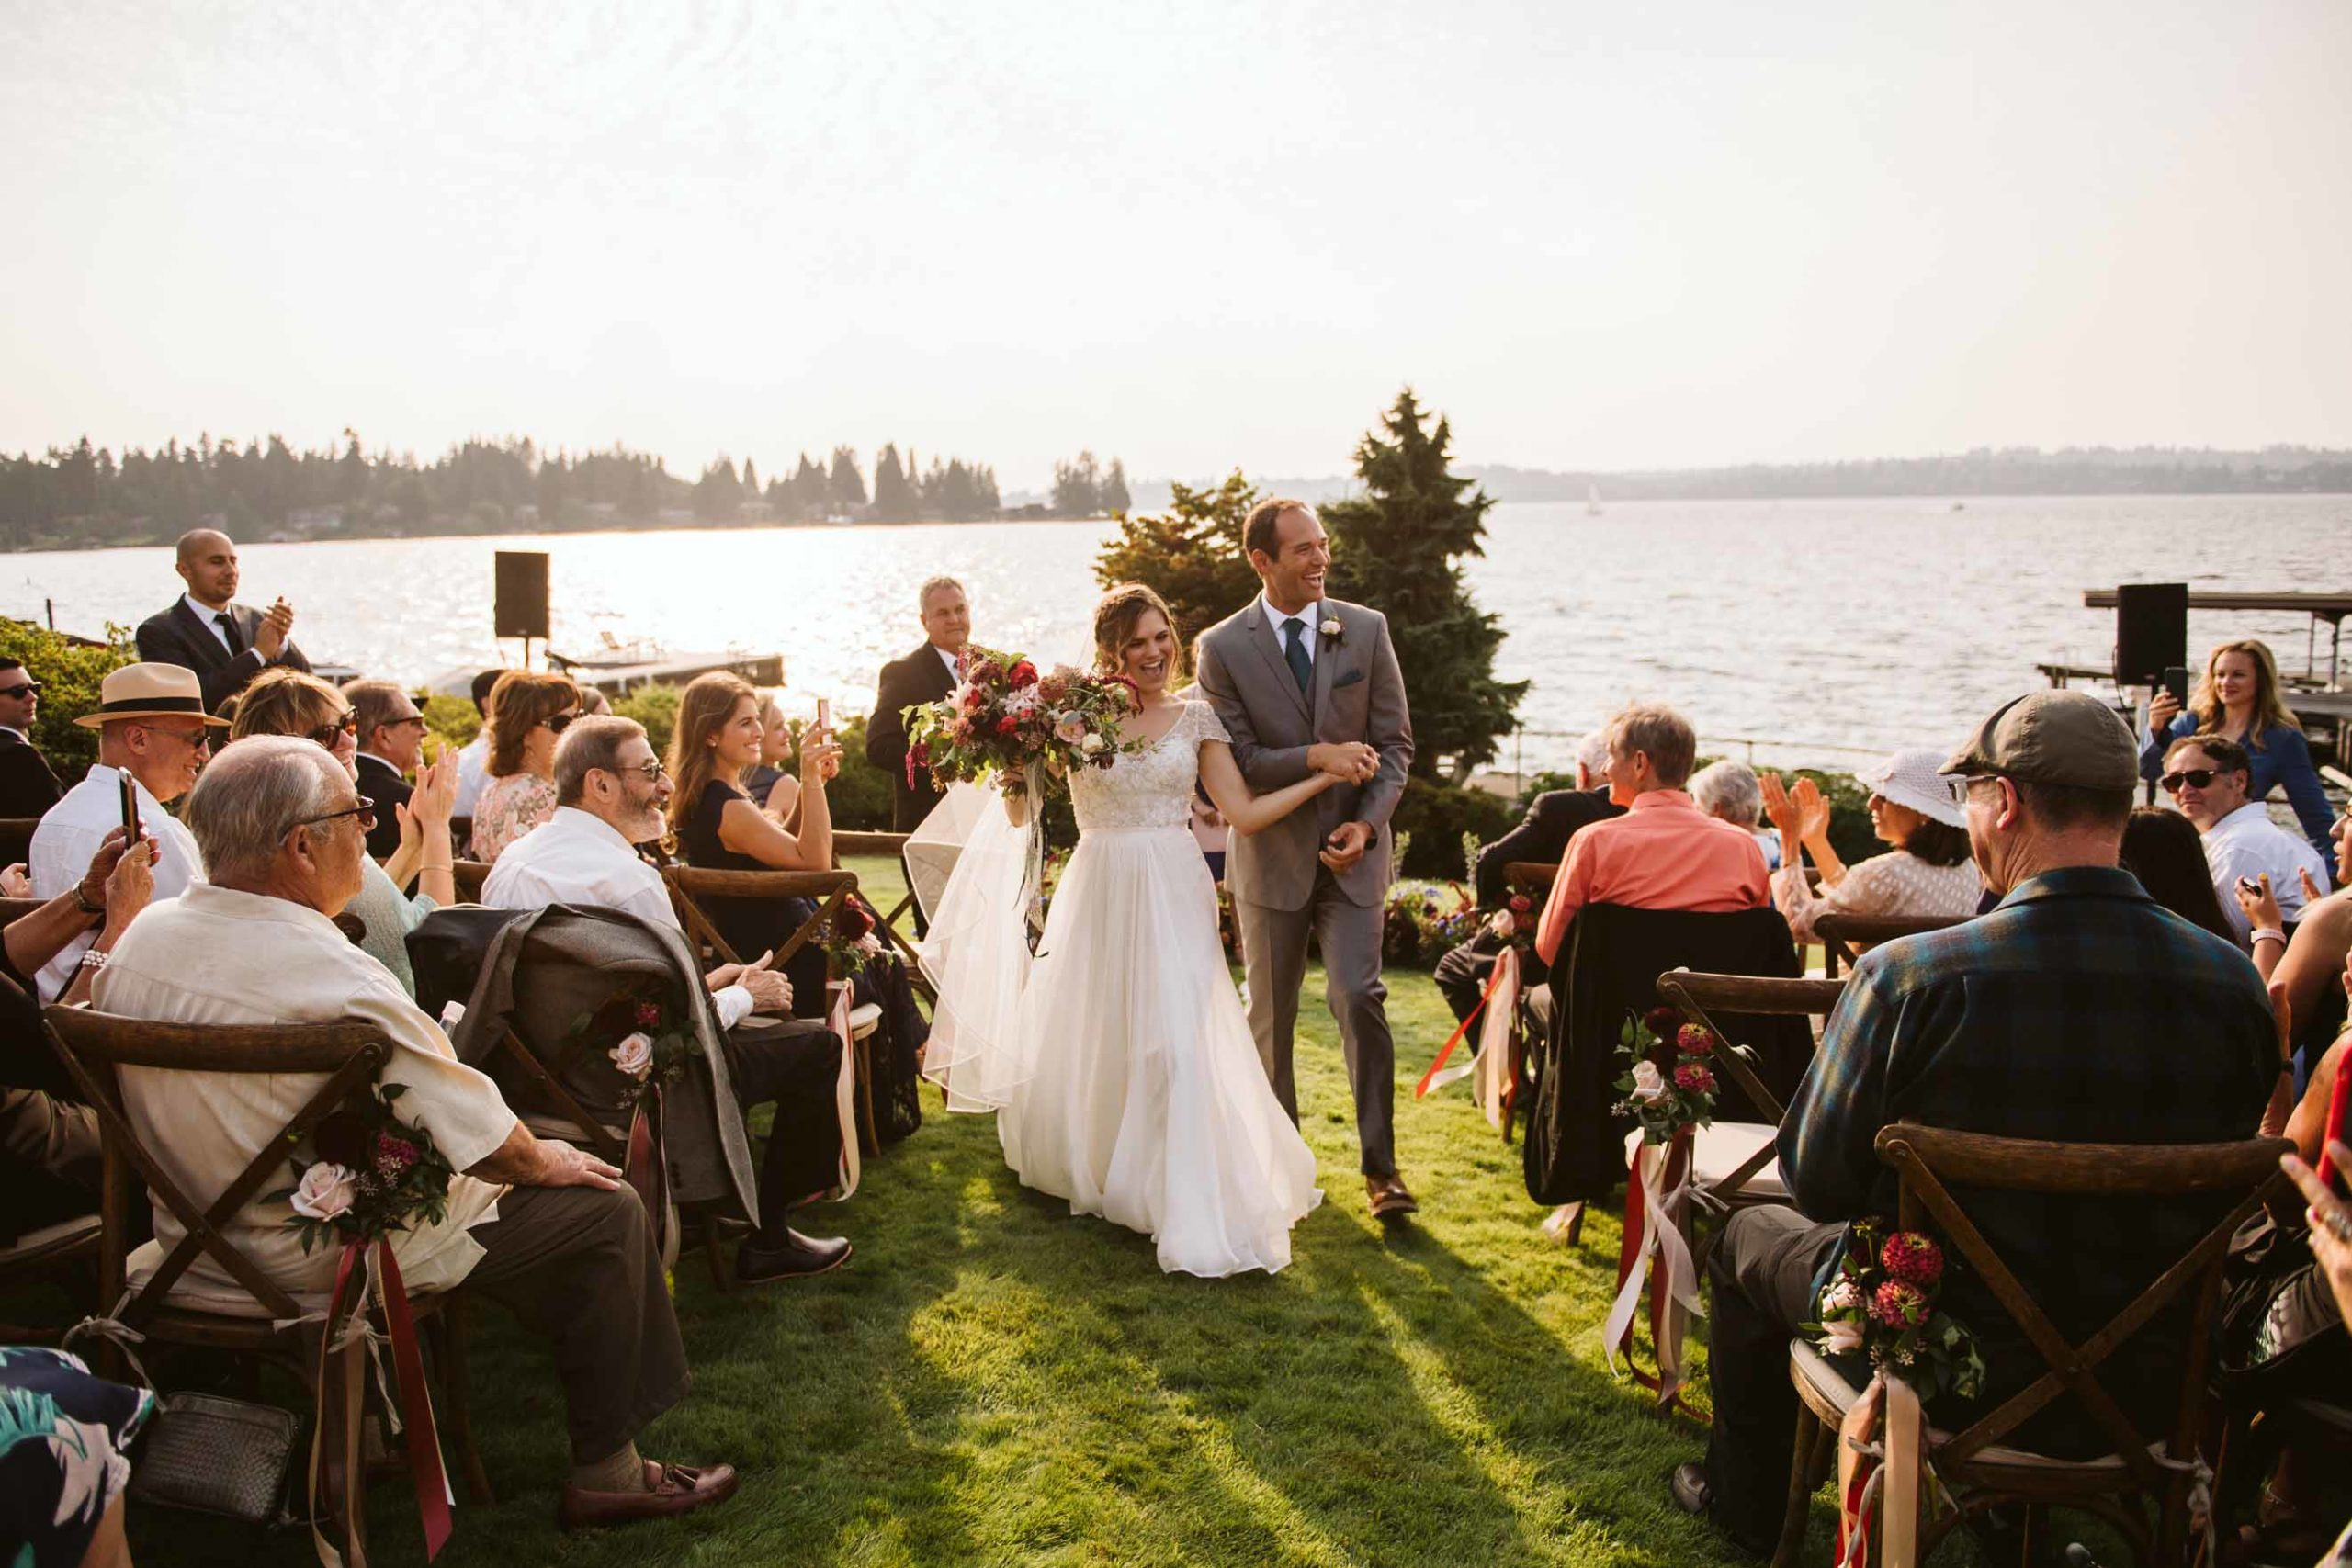 Bride and groom walking down the aisle of their outdoor intimate wedding ceremony on Lake Washington.